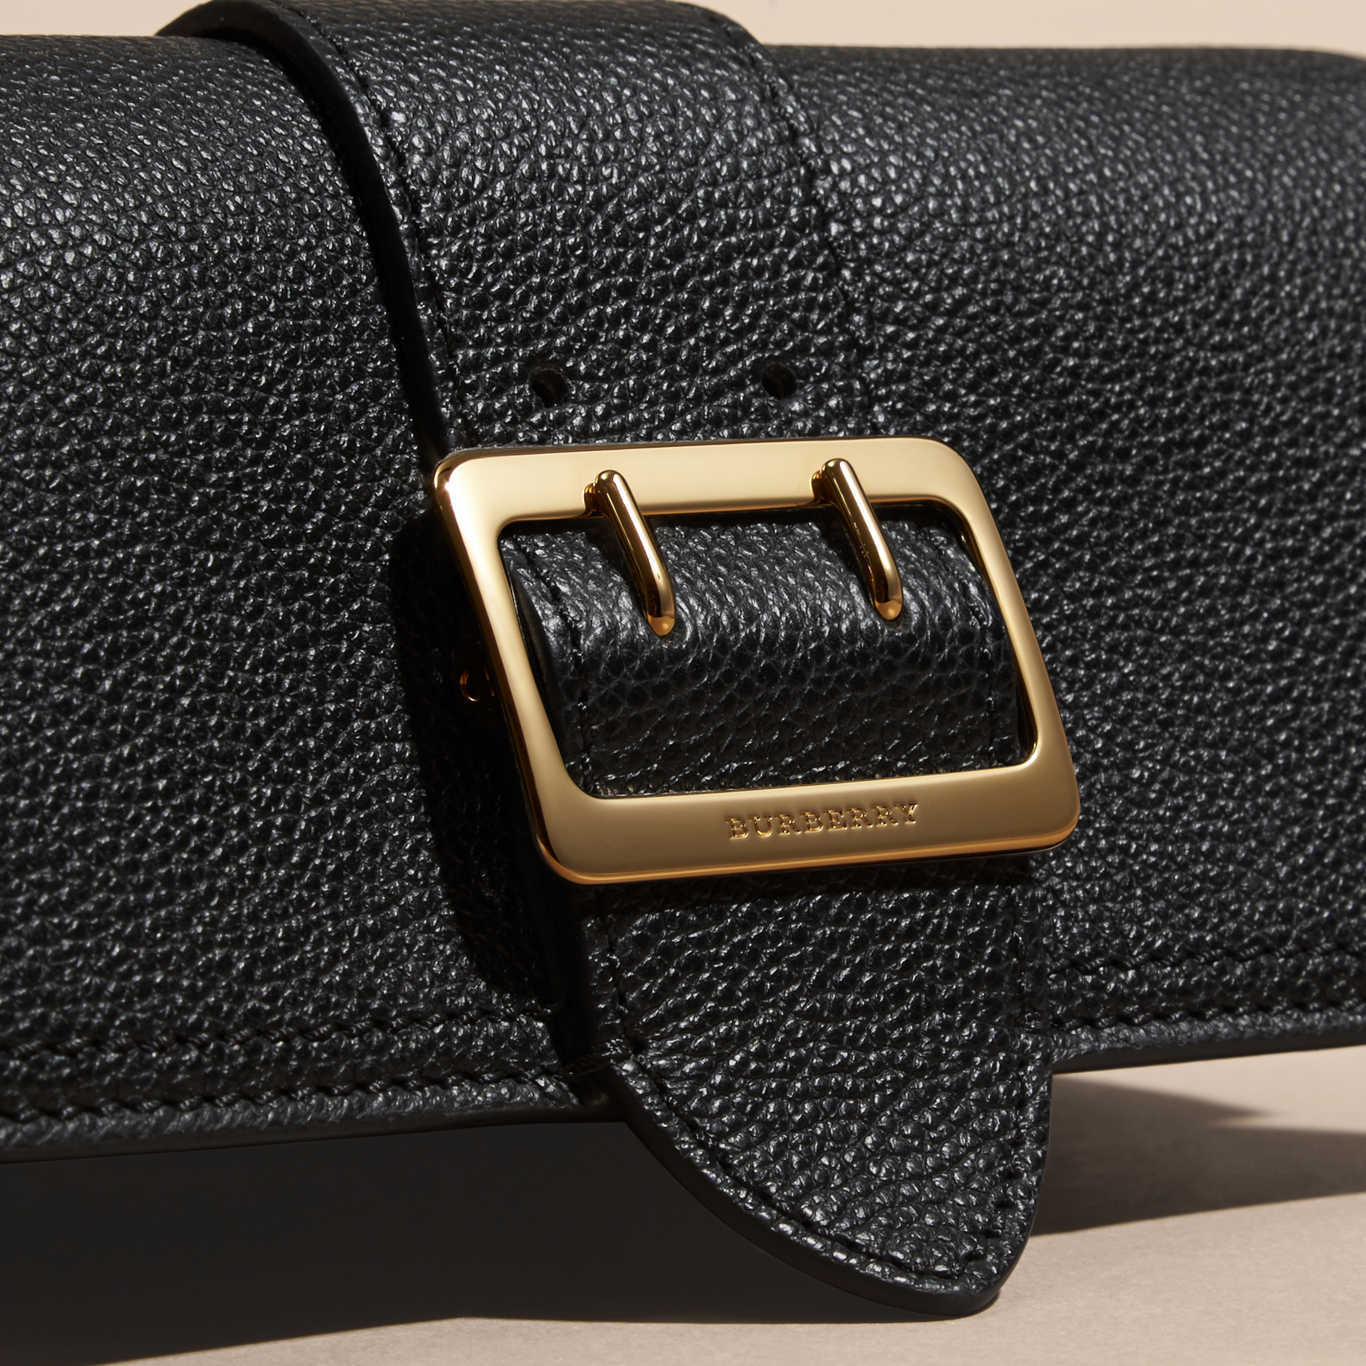 【 BURBERRY 】 Textured Leather Continental Wallet 長財布 黒